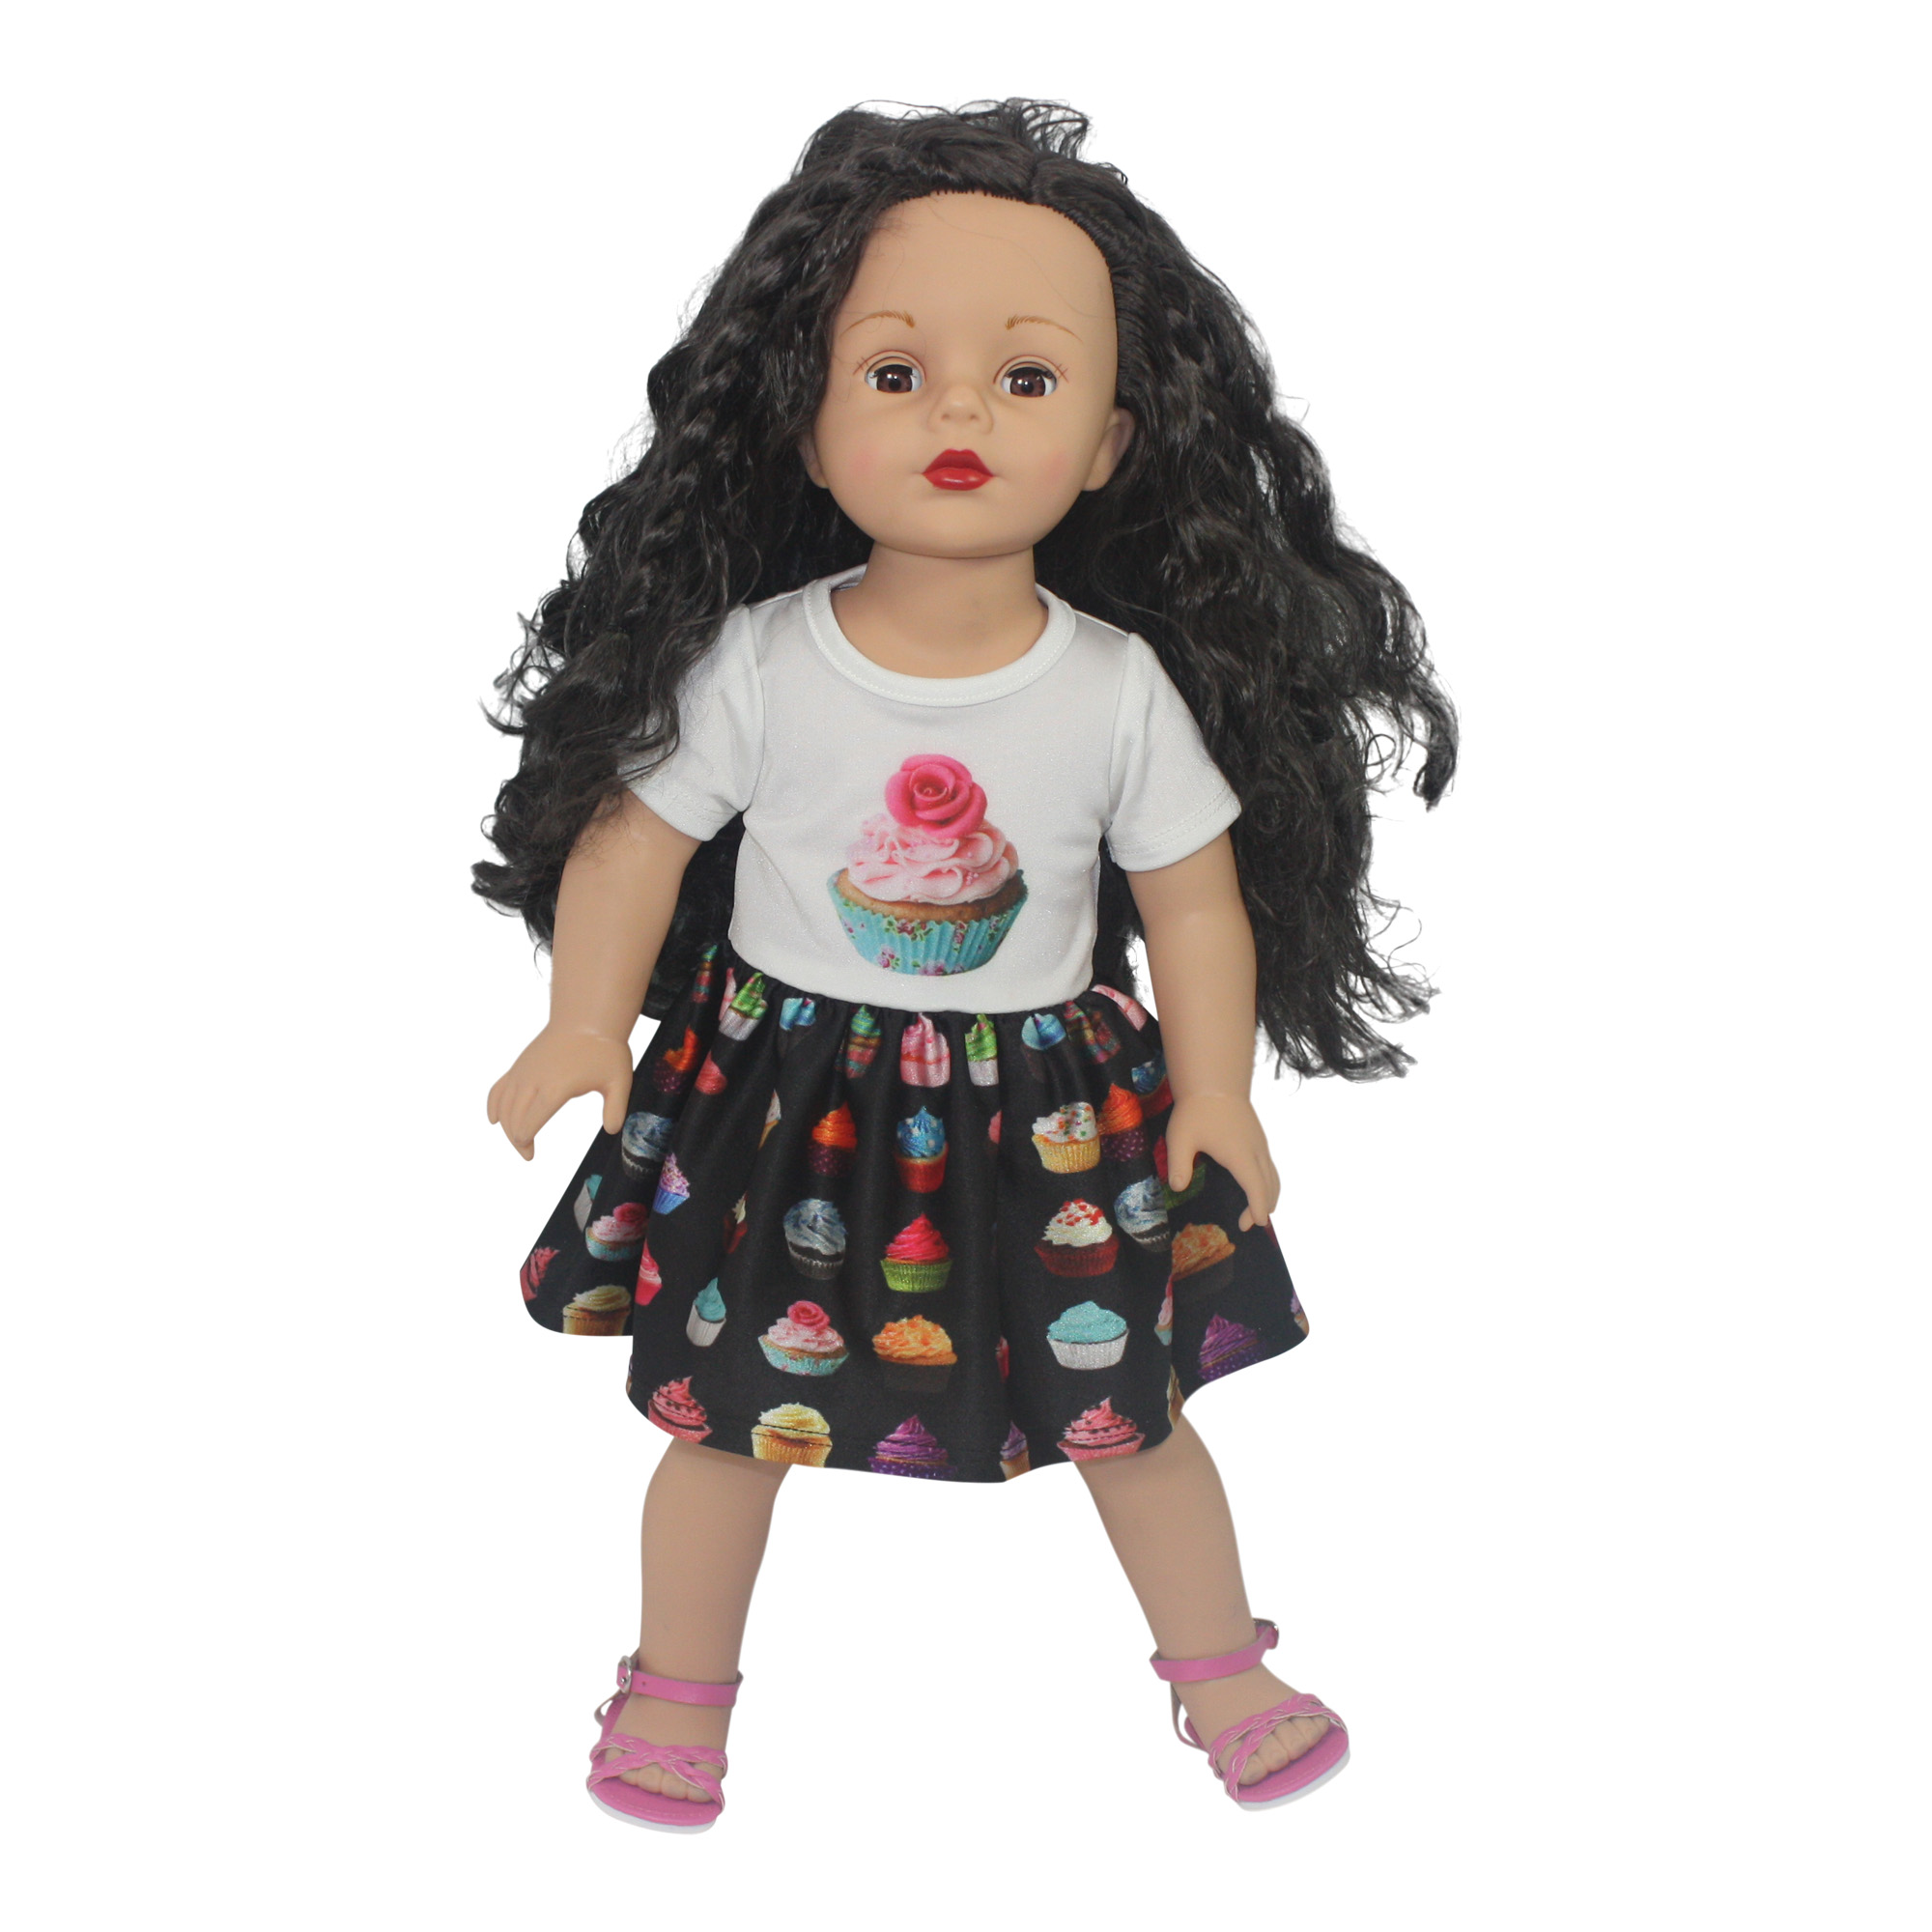 "Ari and Friends Yummy Cupcake Dress Fits 18"" American Girl Dolls and other 18 inch... by Dream Big Wholesale Doll Clothes"